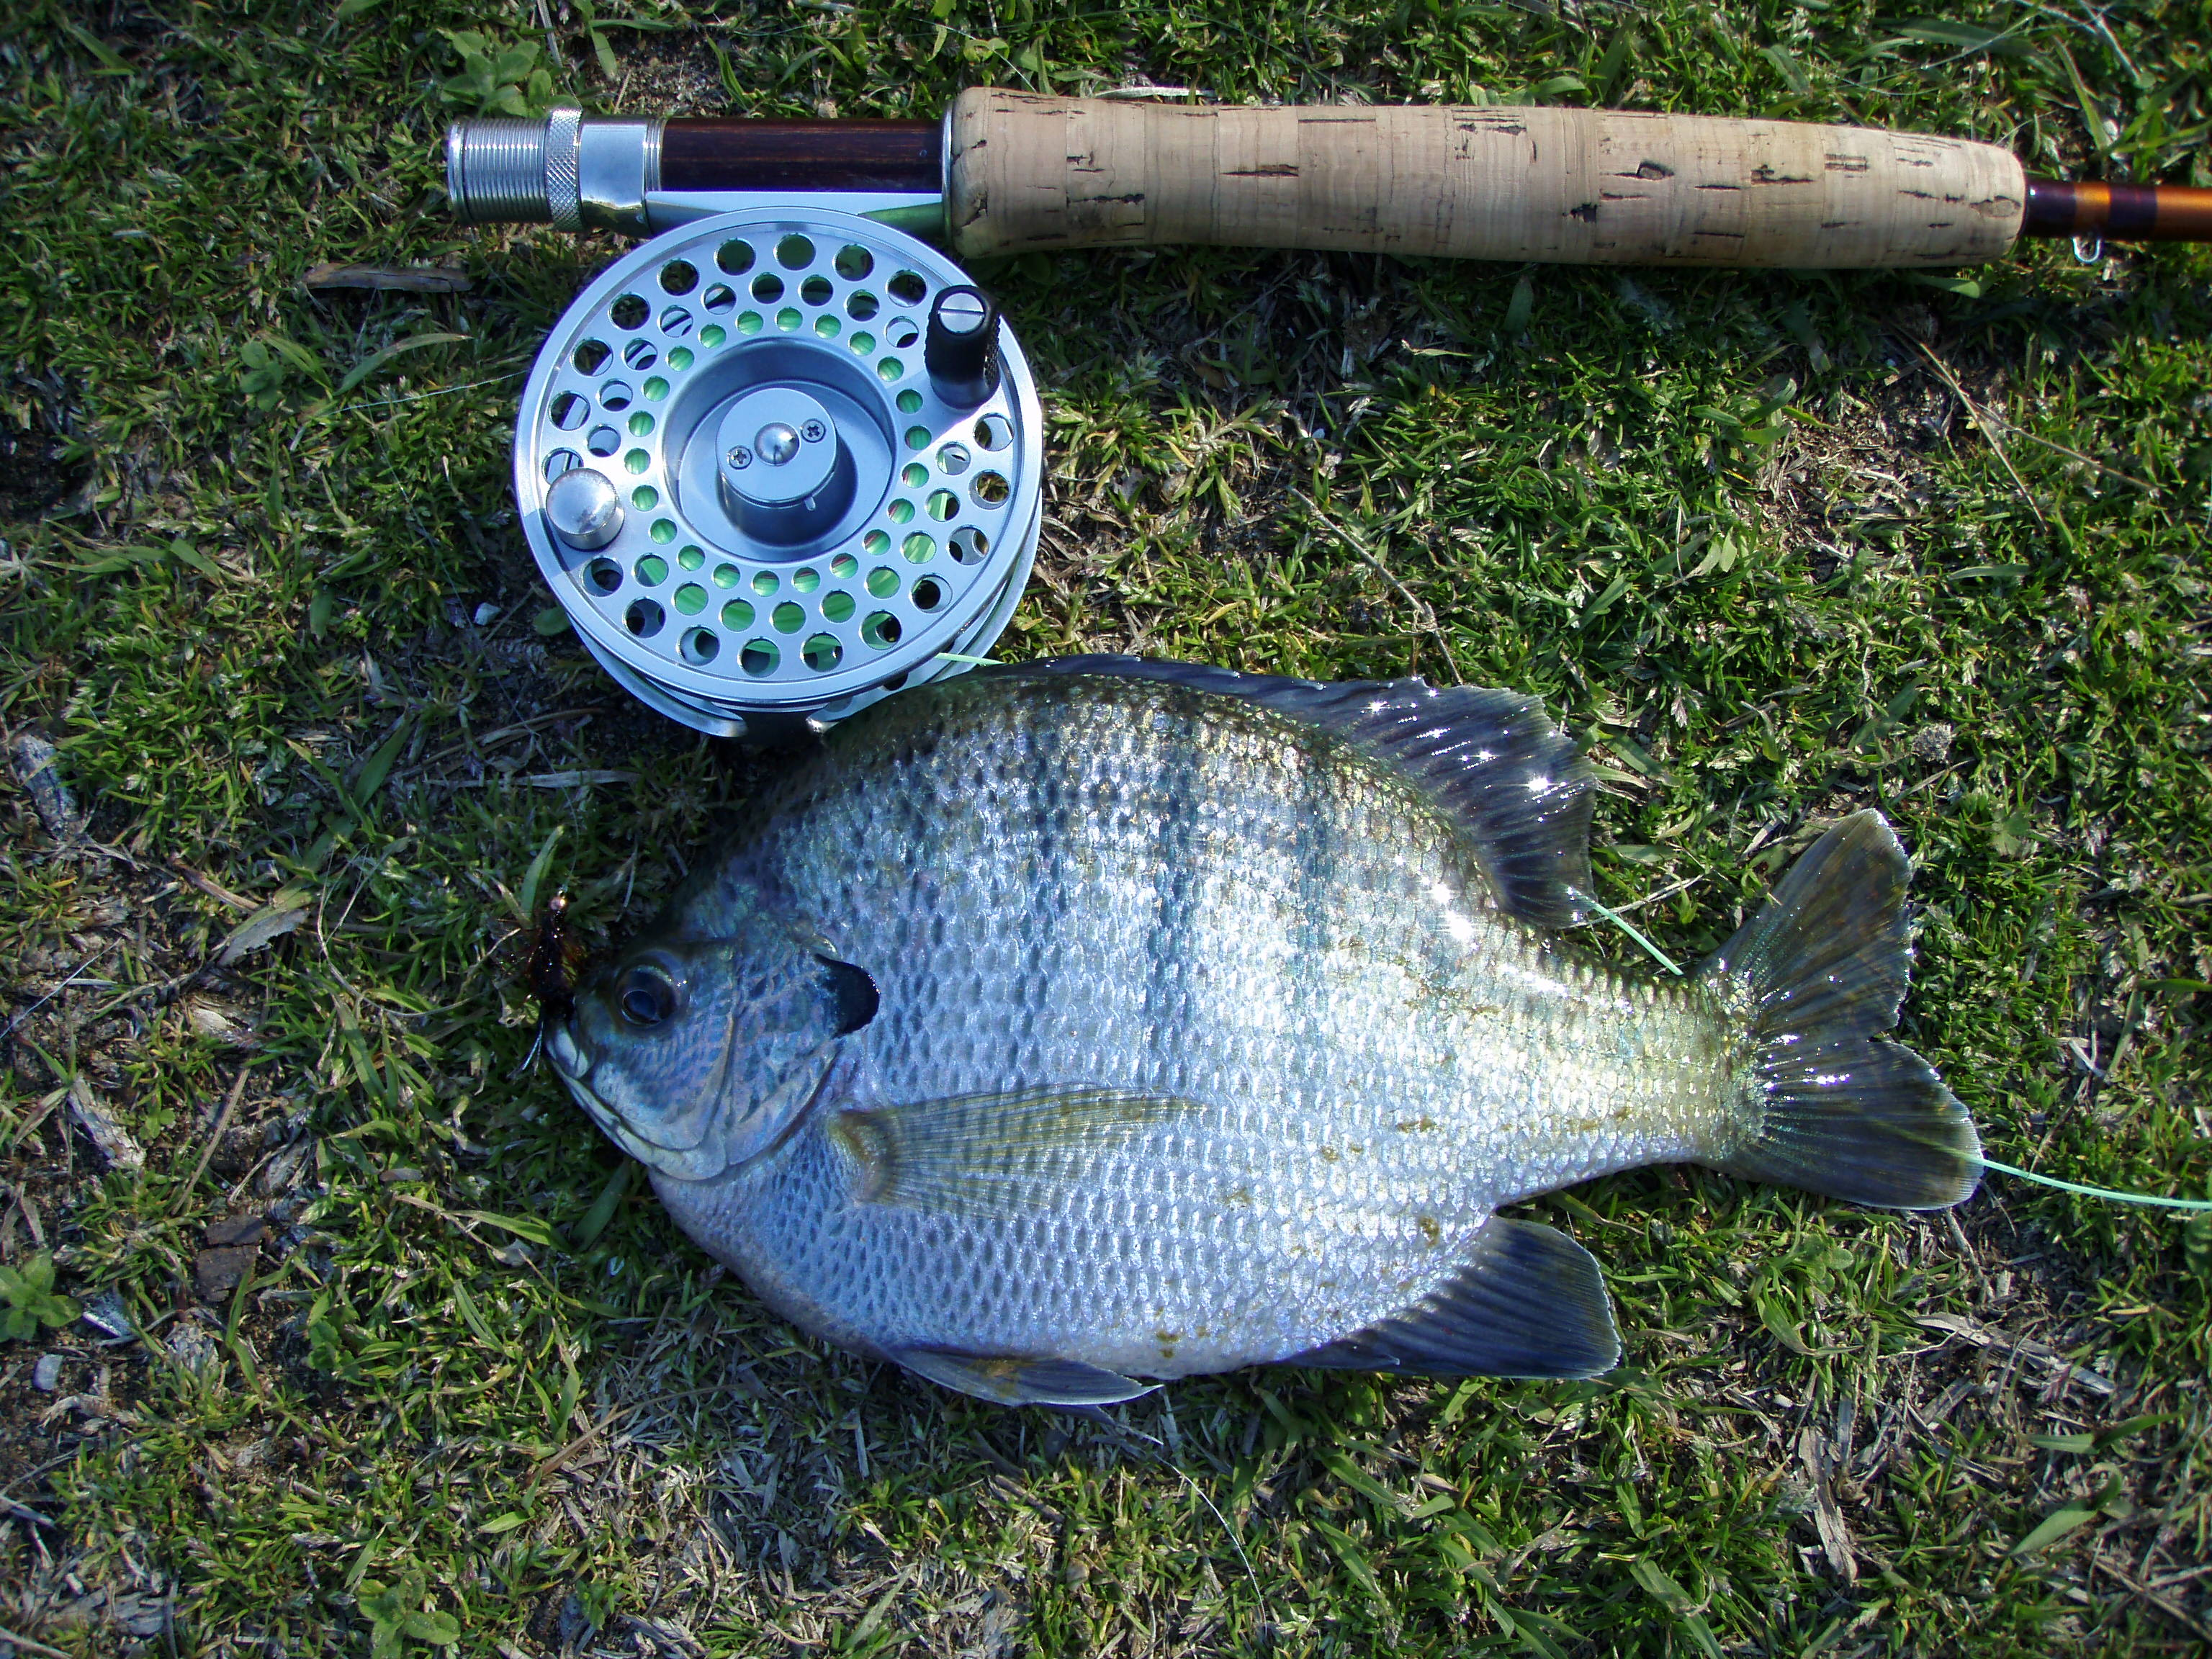 Freshwater fish in alabama - The Bluegill Lepomis Macrochirus Is A Species Of Freshwater Fish Sometimes Successful Time To Fish For Bluegills As They Aggressively